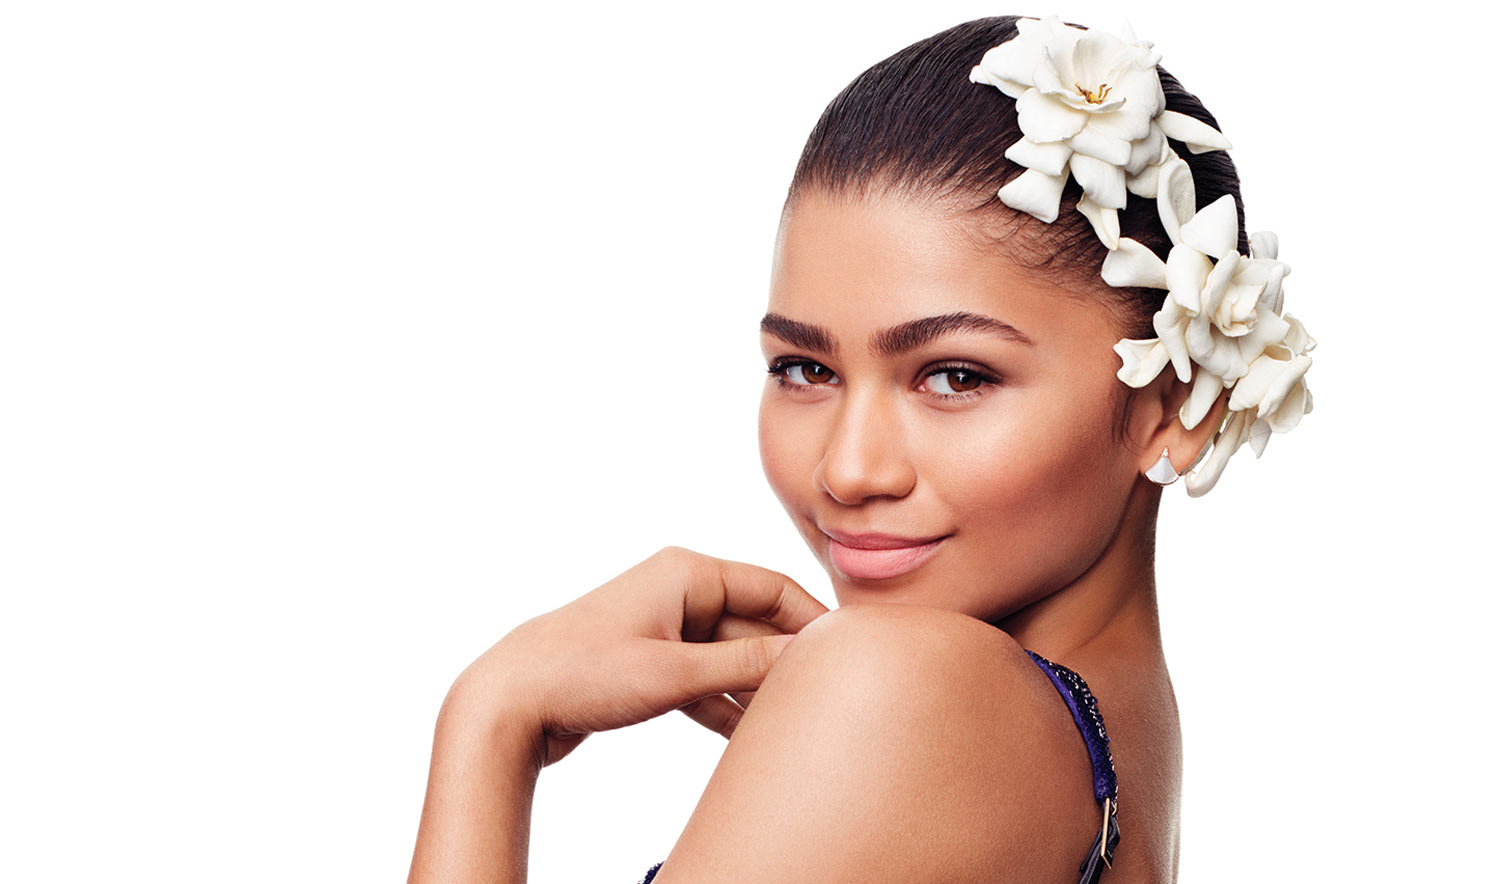 who is zendaya dating How can the answer be improved.